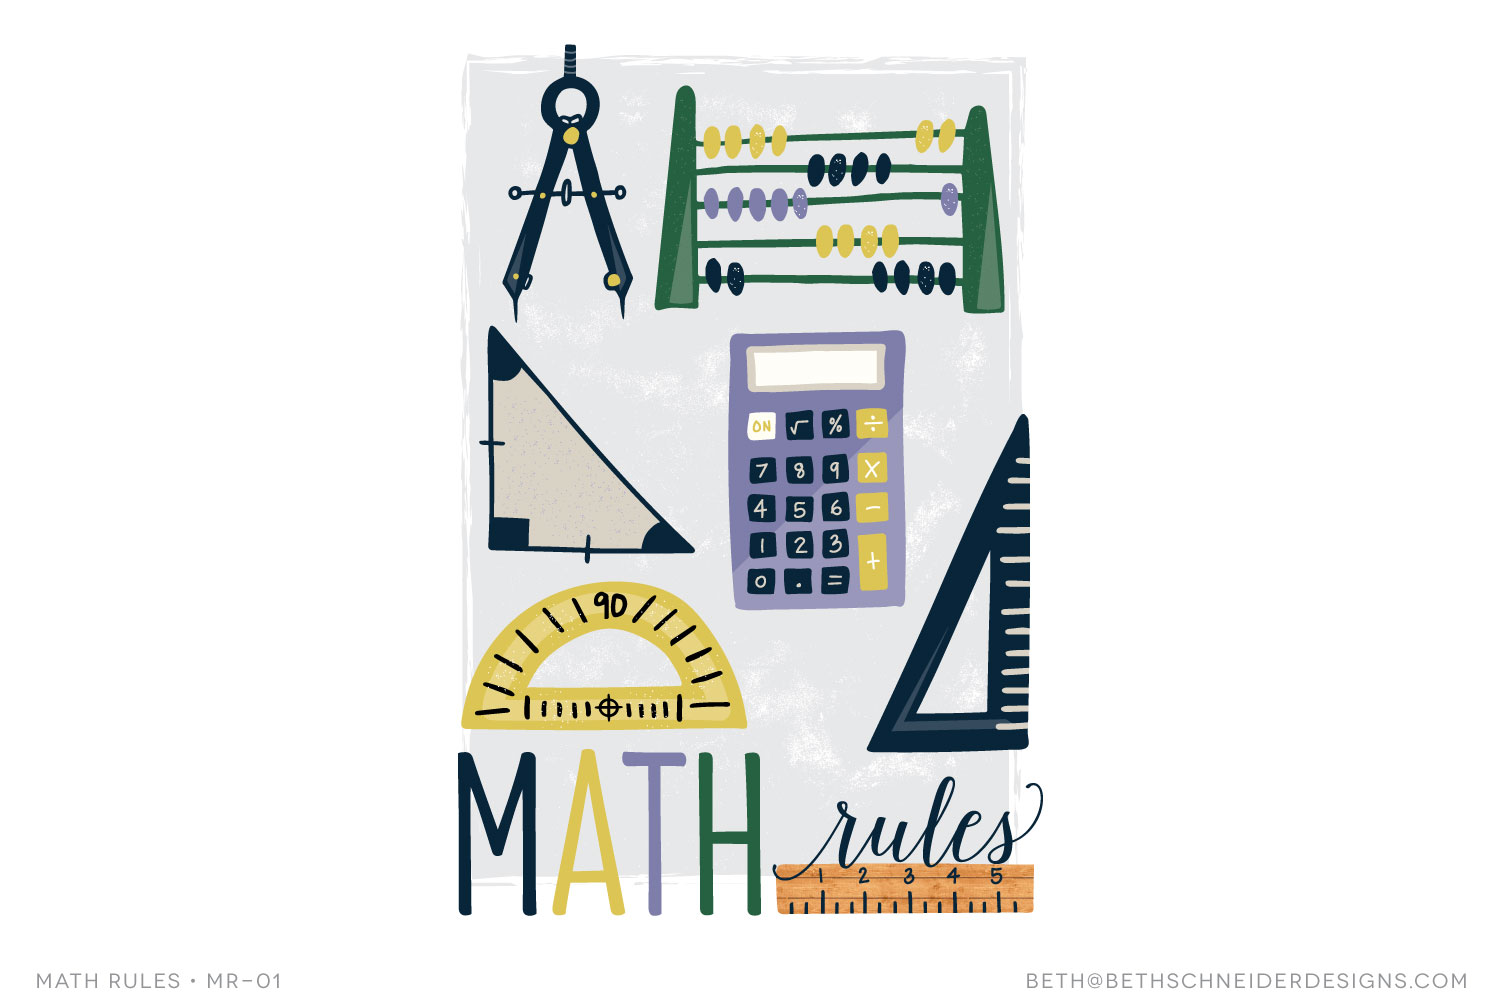 MathRules-MR01.jpg